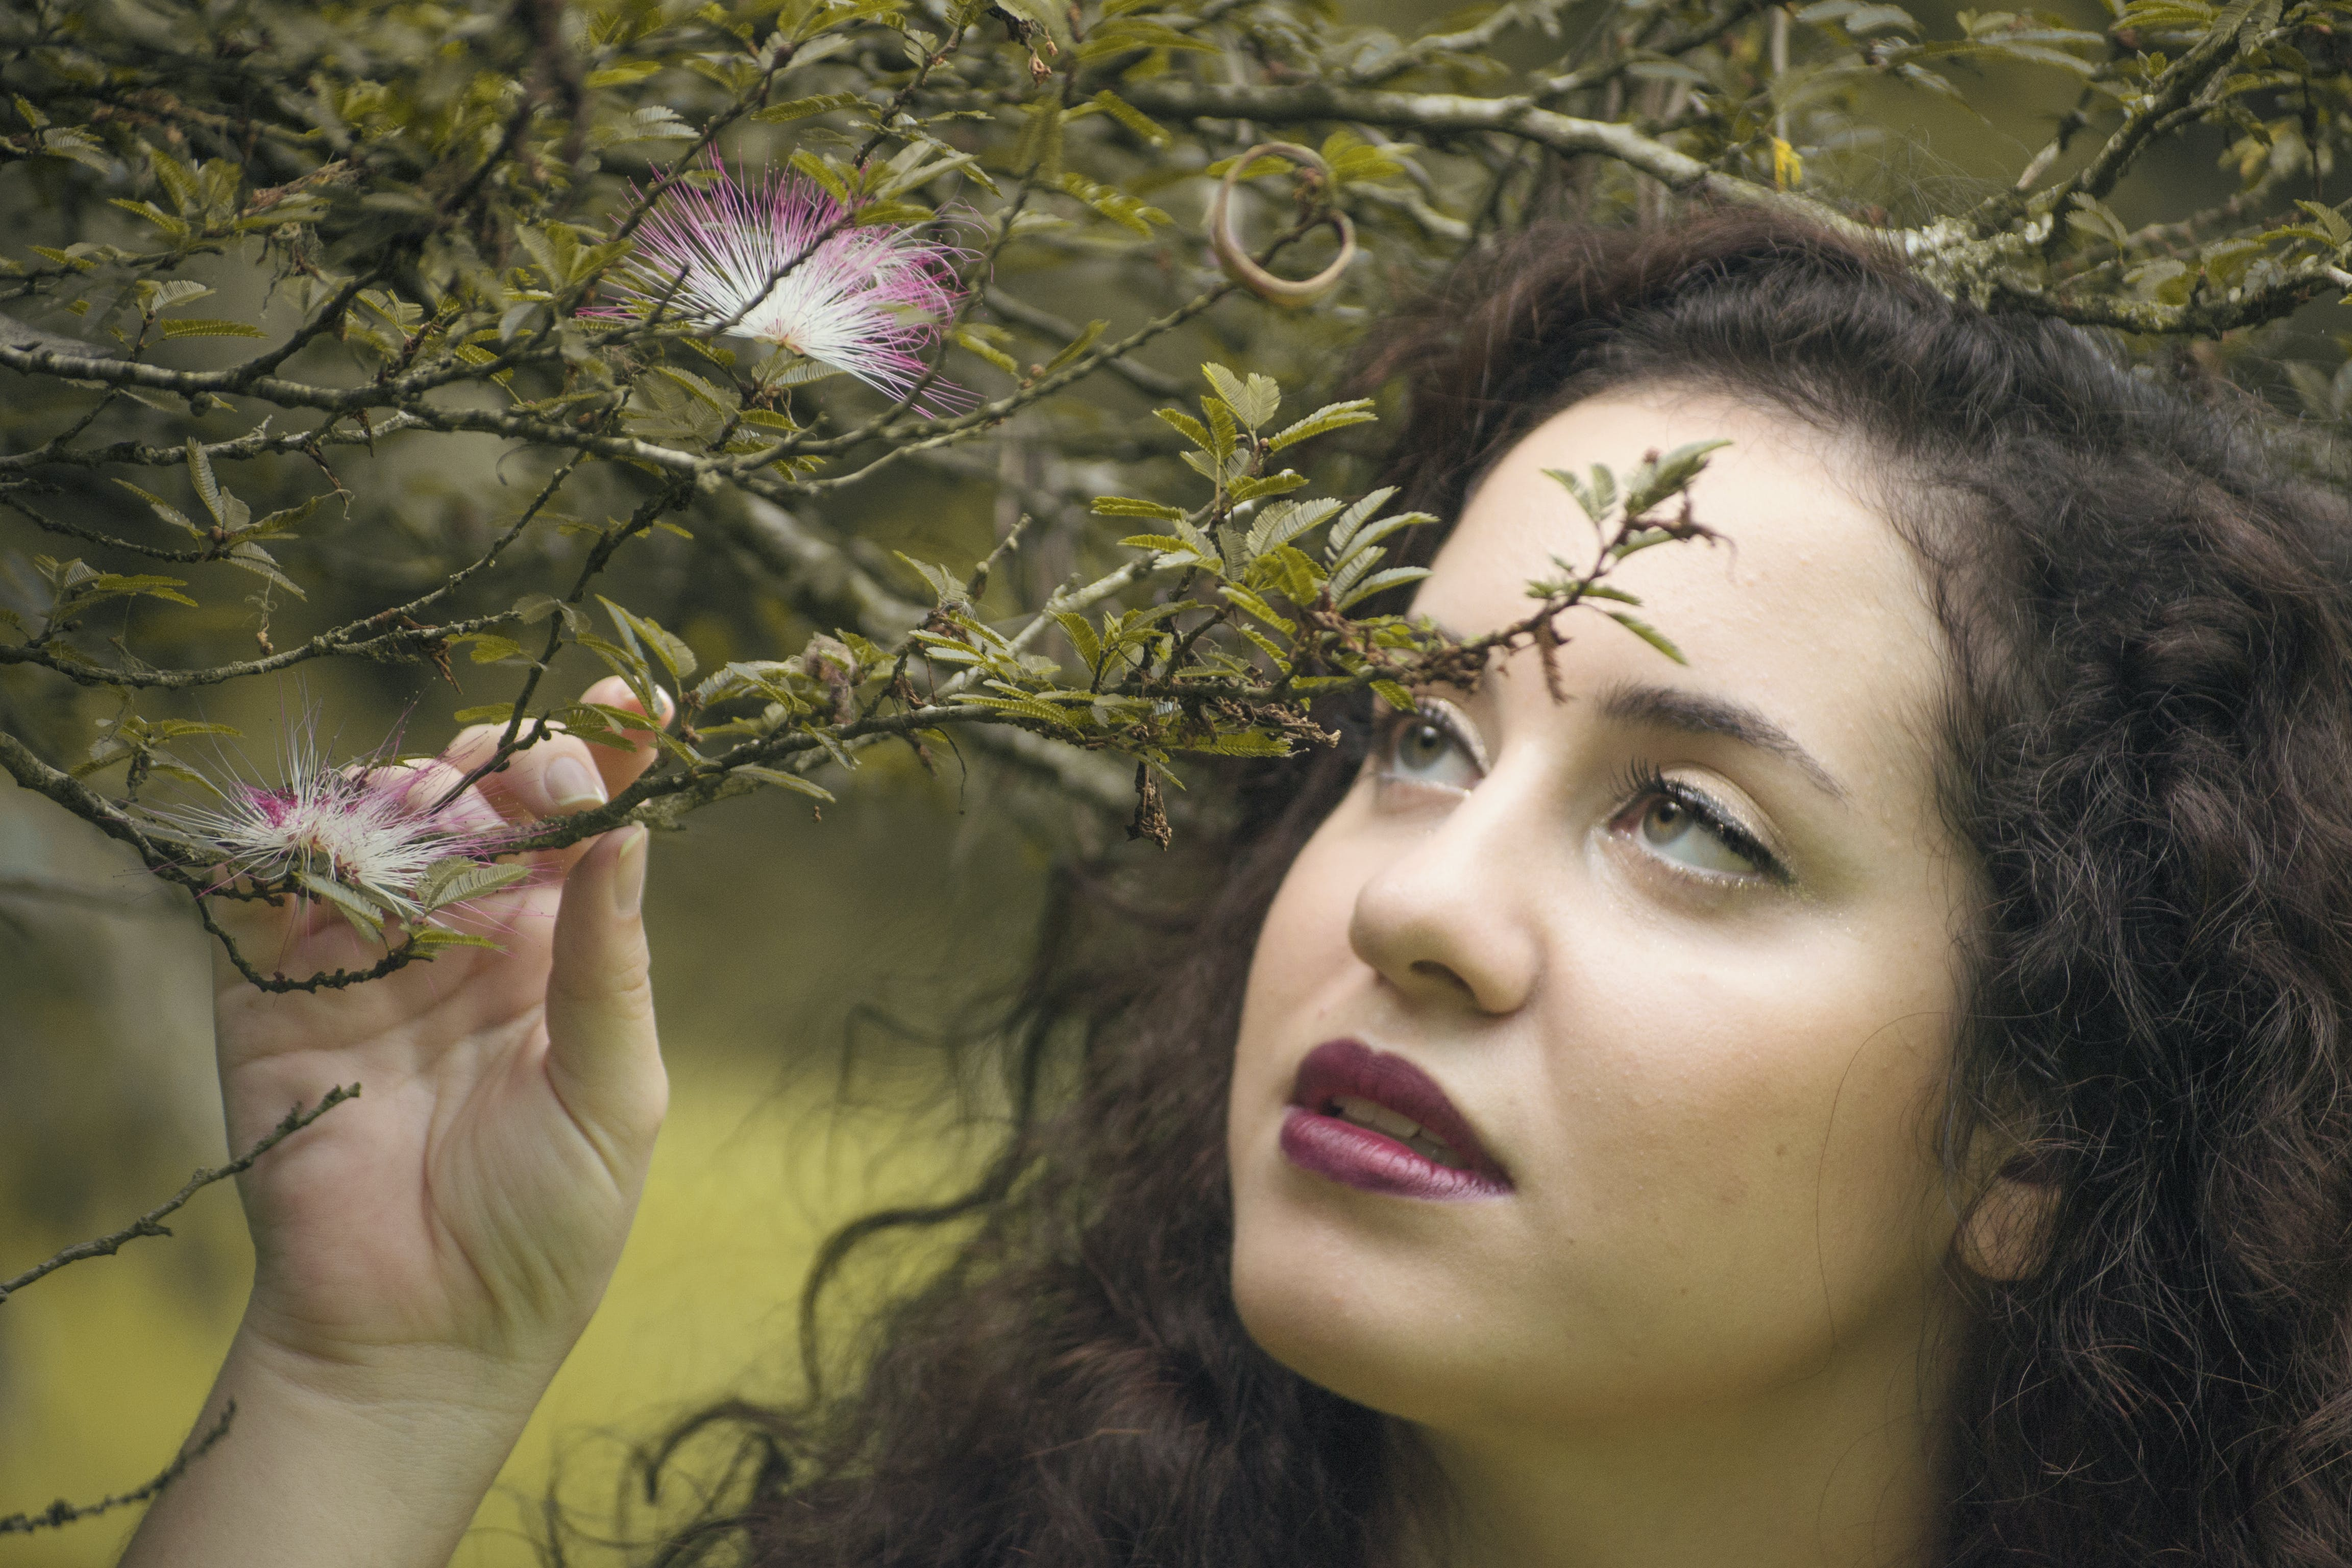 of girl, nature, portrait, woman